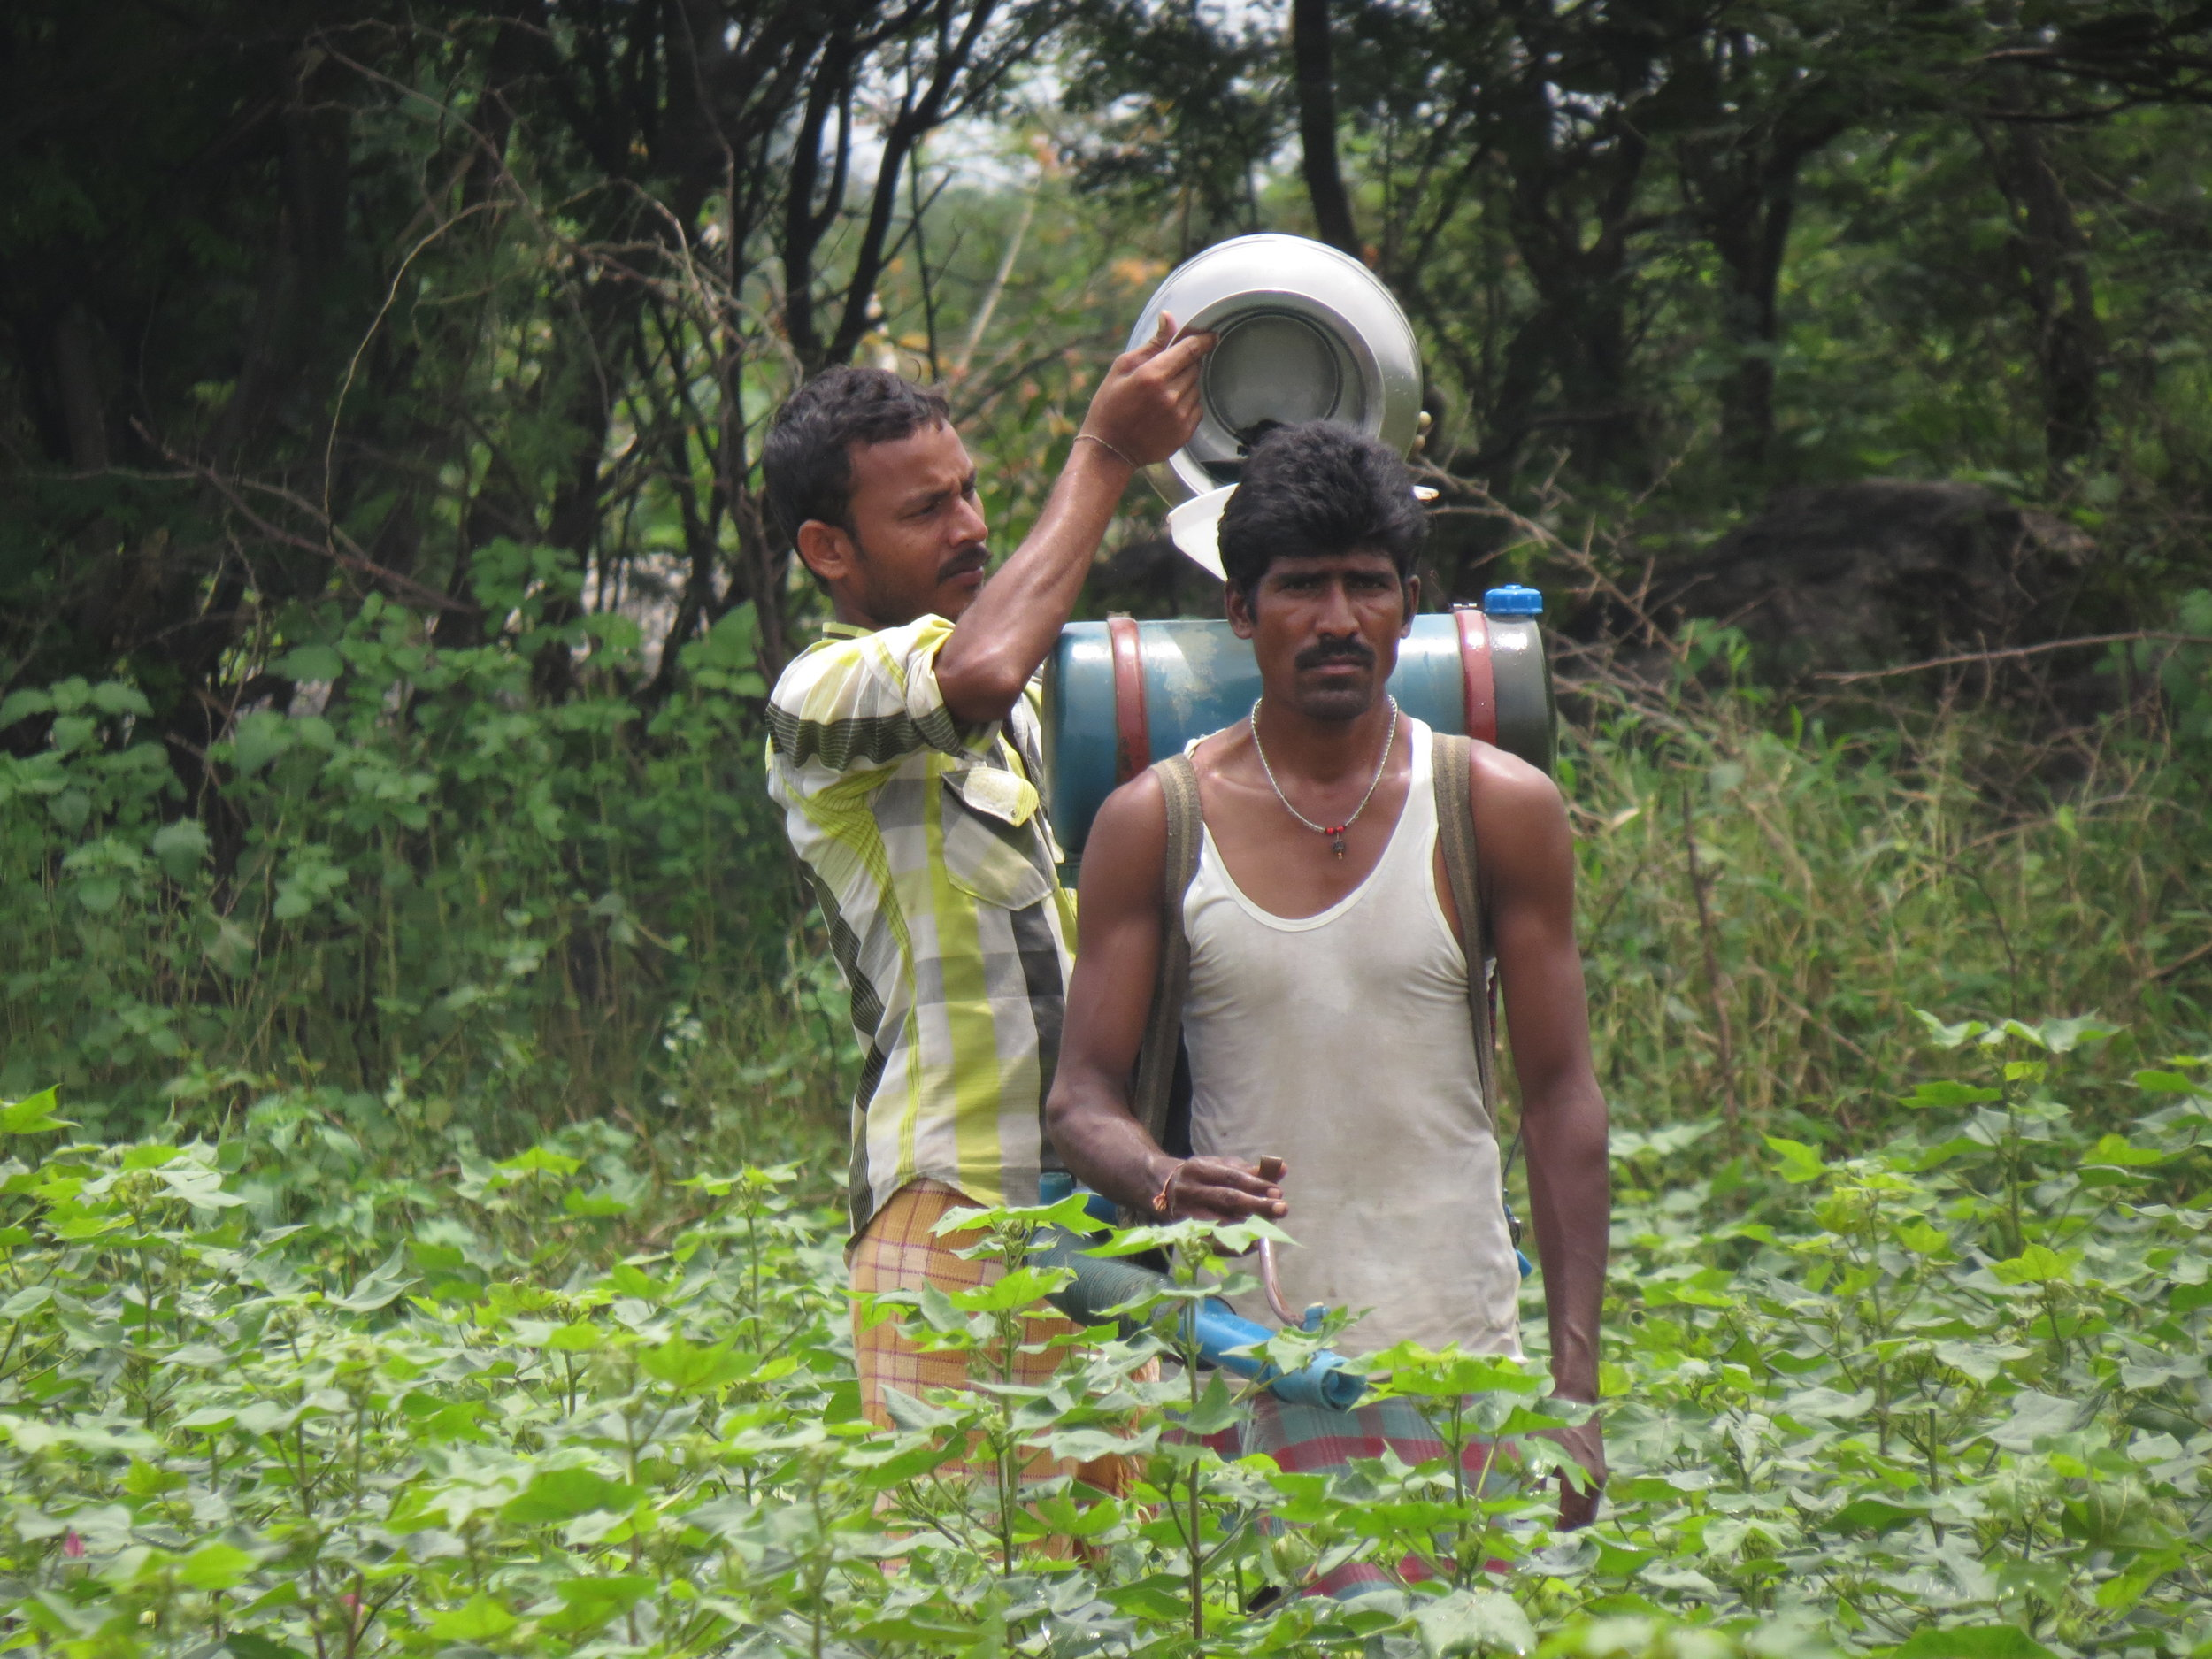 Loading pesticides onto a workers back